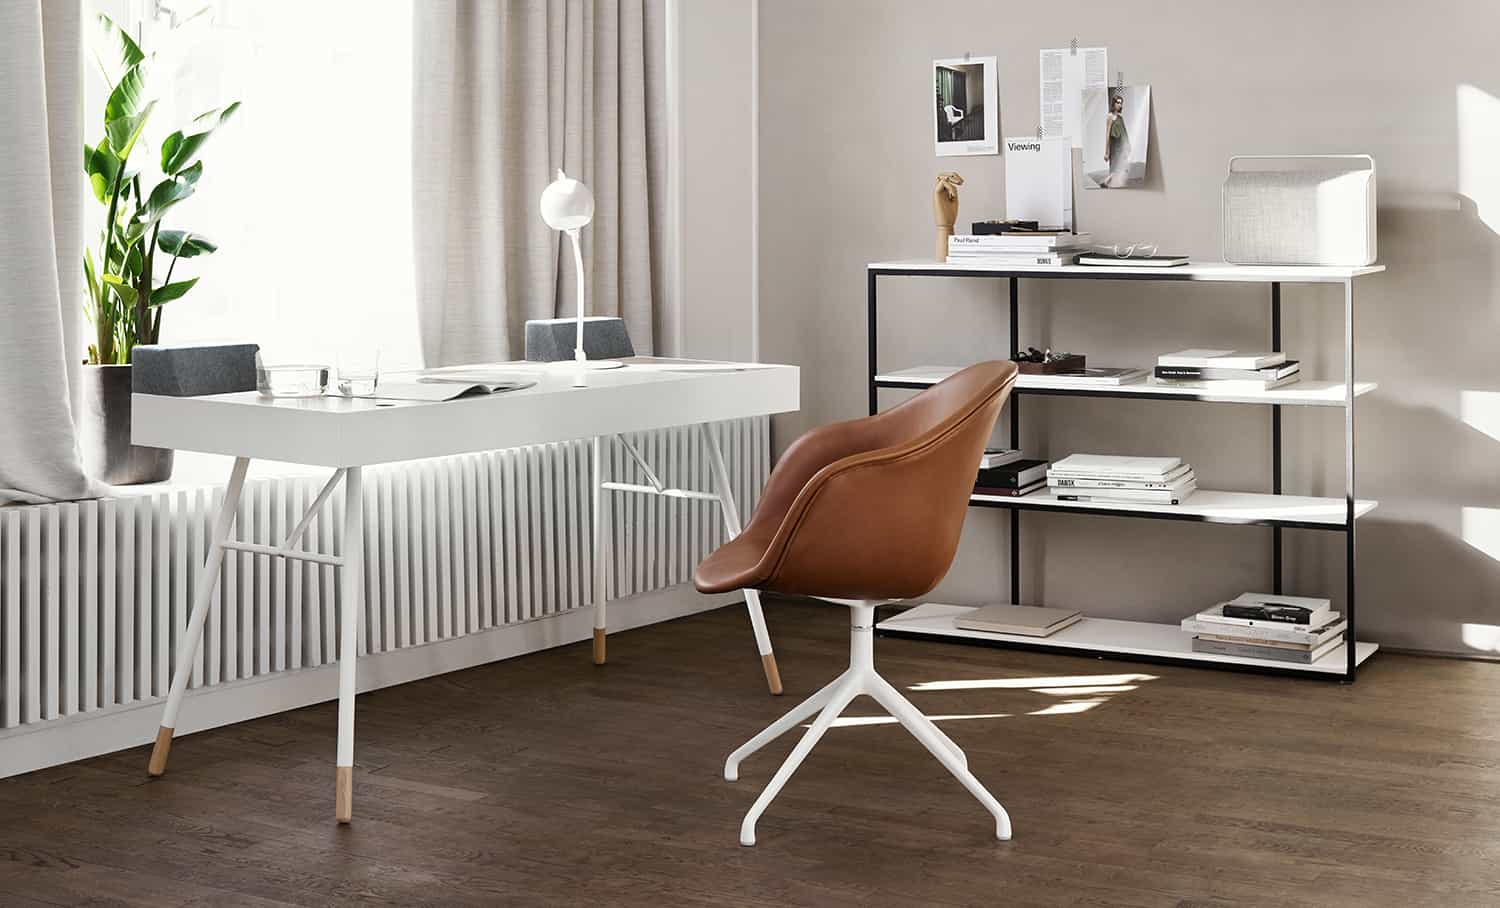 minimal style home office 2021 neutral colors